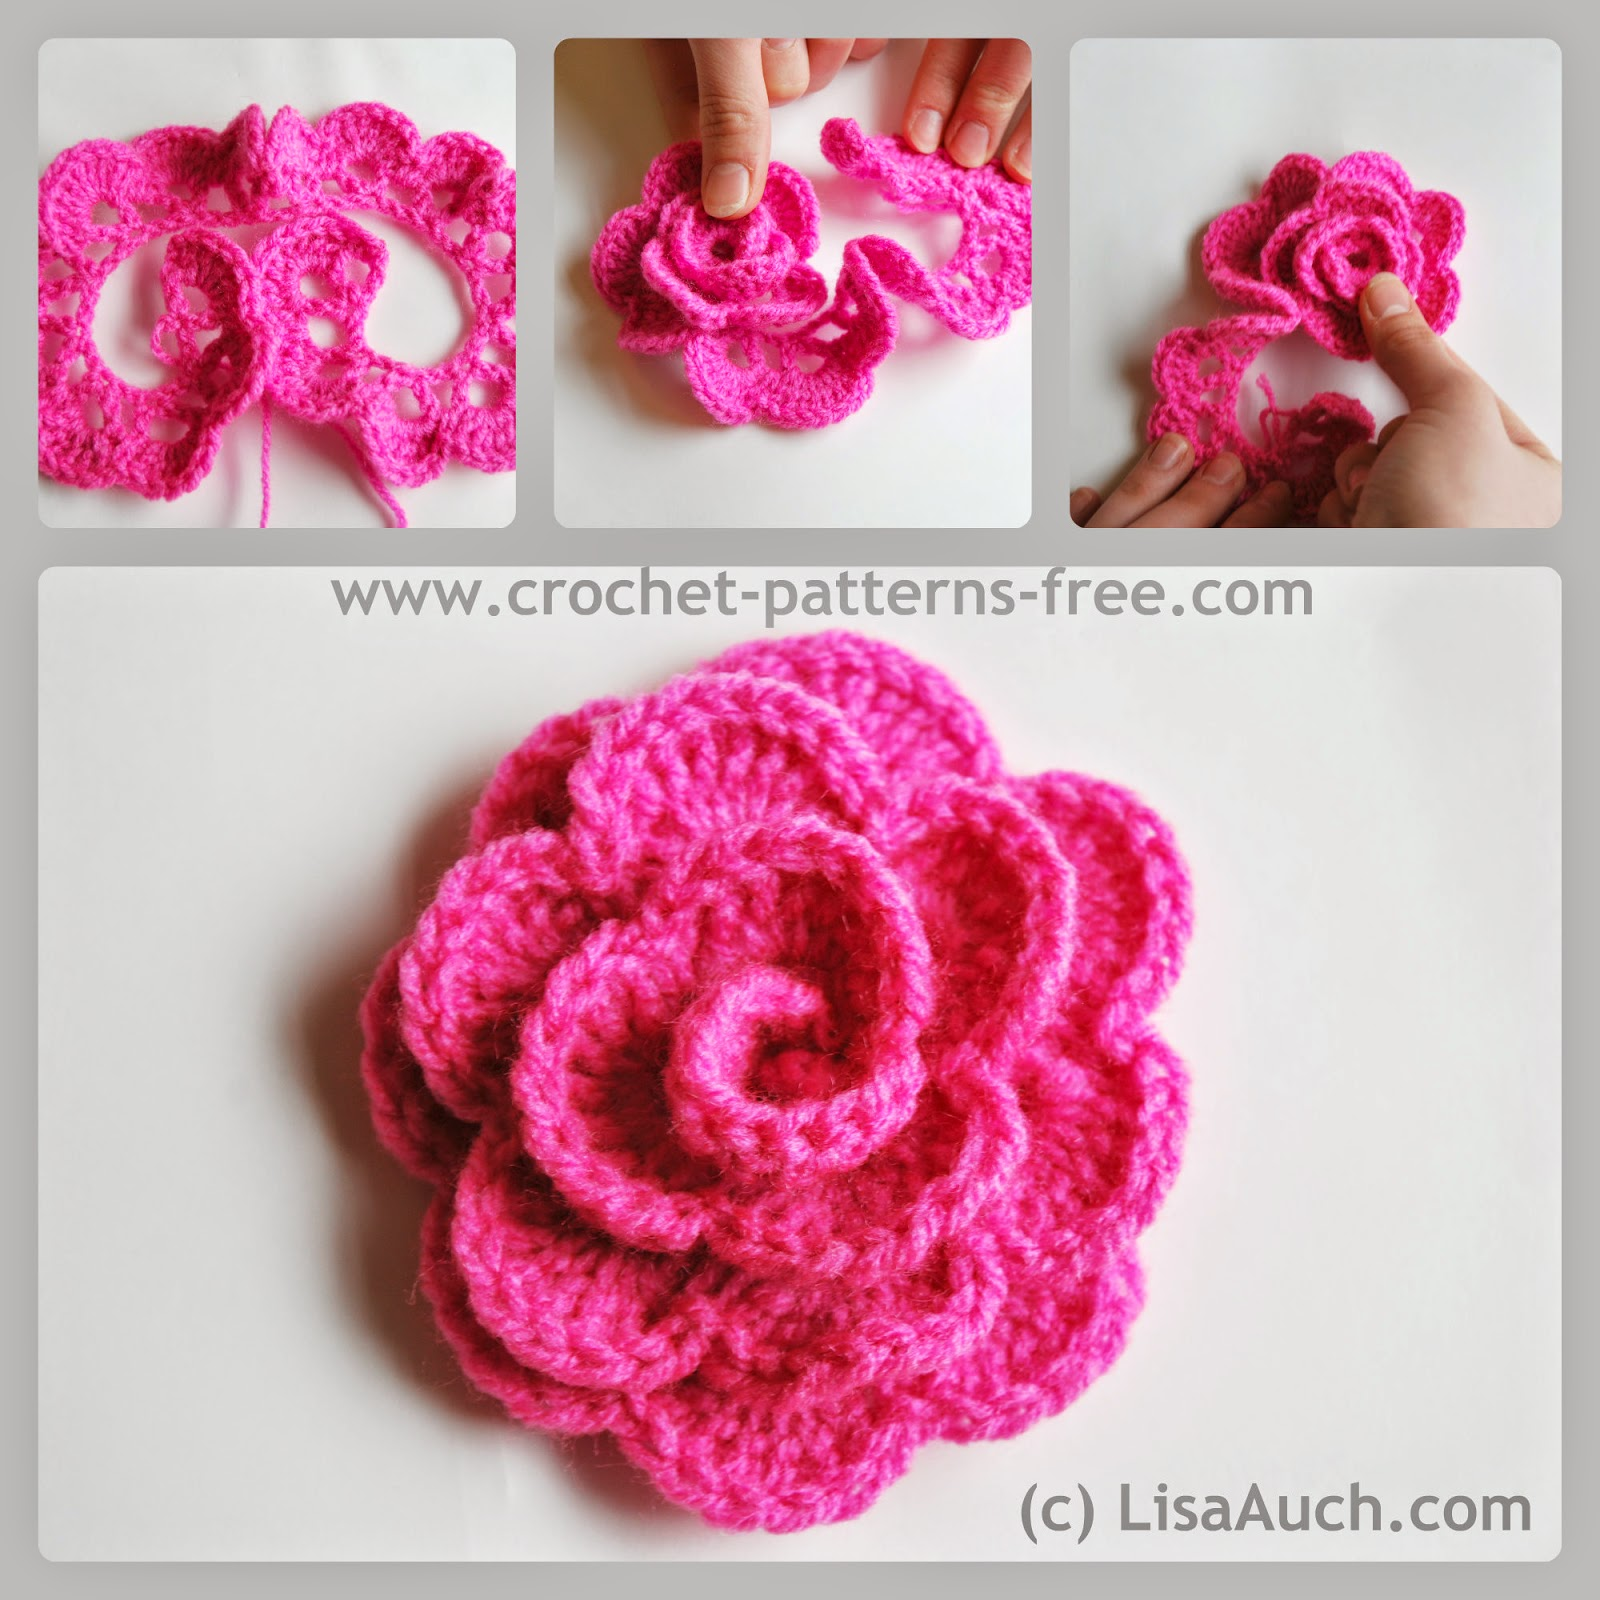 Basic Crochet Flower Patterns Free : Rose Hip Blog Crochet Flower Pattern 2016 Car Release Date